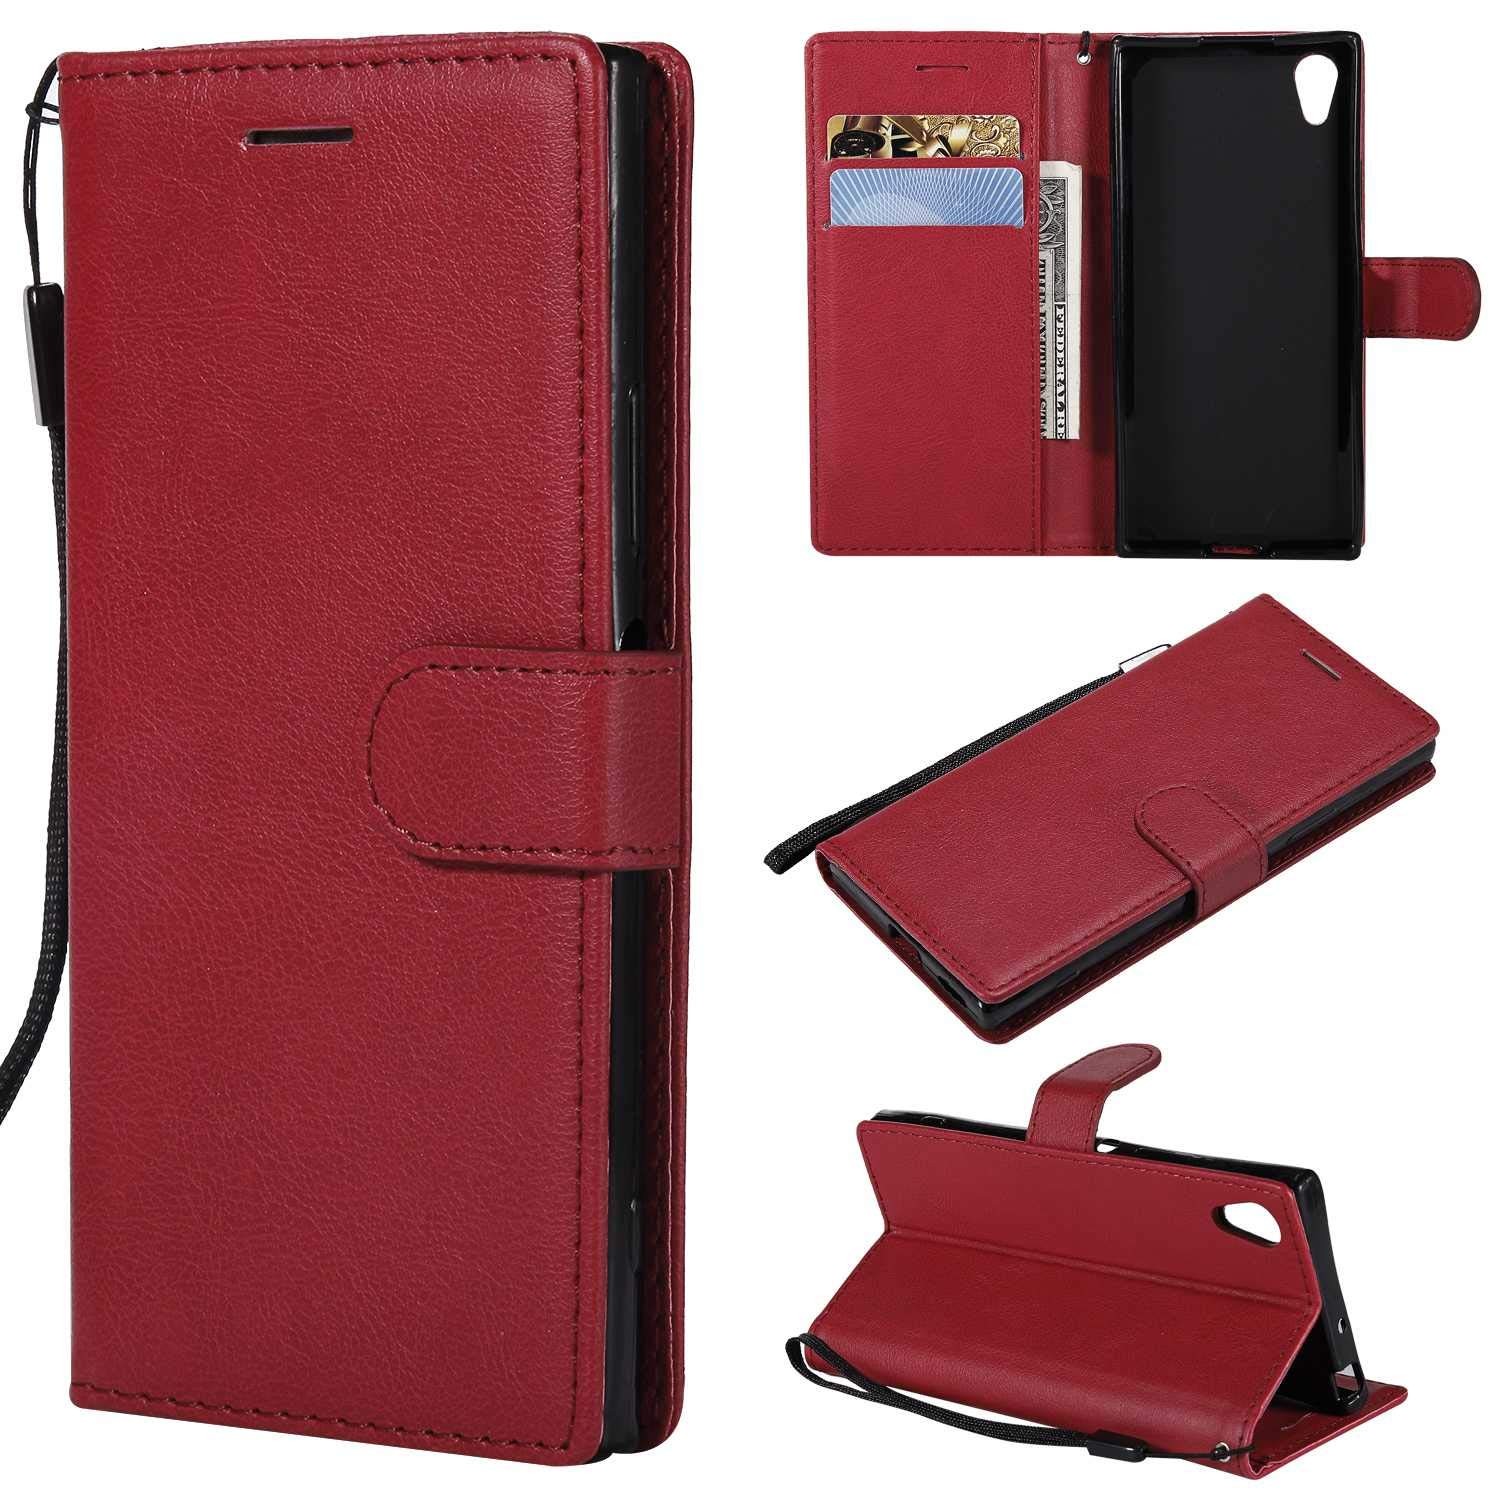 Sony Xperia XA1 Wallet Case, CUSKING Premium Leather Cover with Silicone Inner Case for Sony Xperia XA1 [Card Holder] [Magnetic Closure] [Hand Strap] - Red